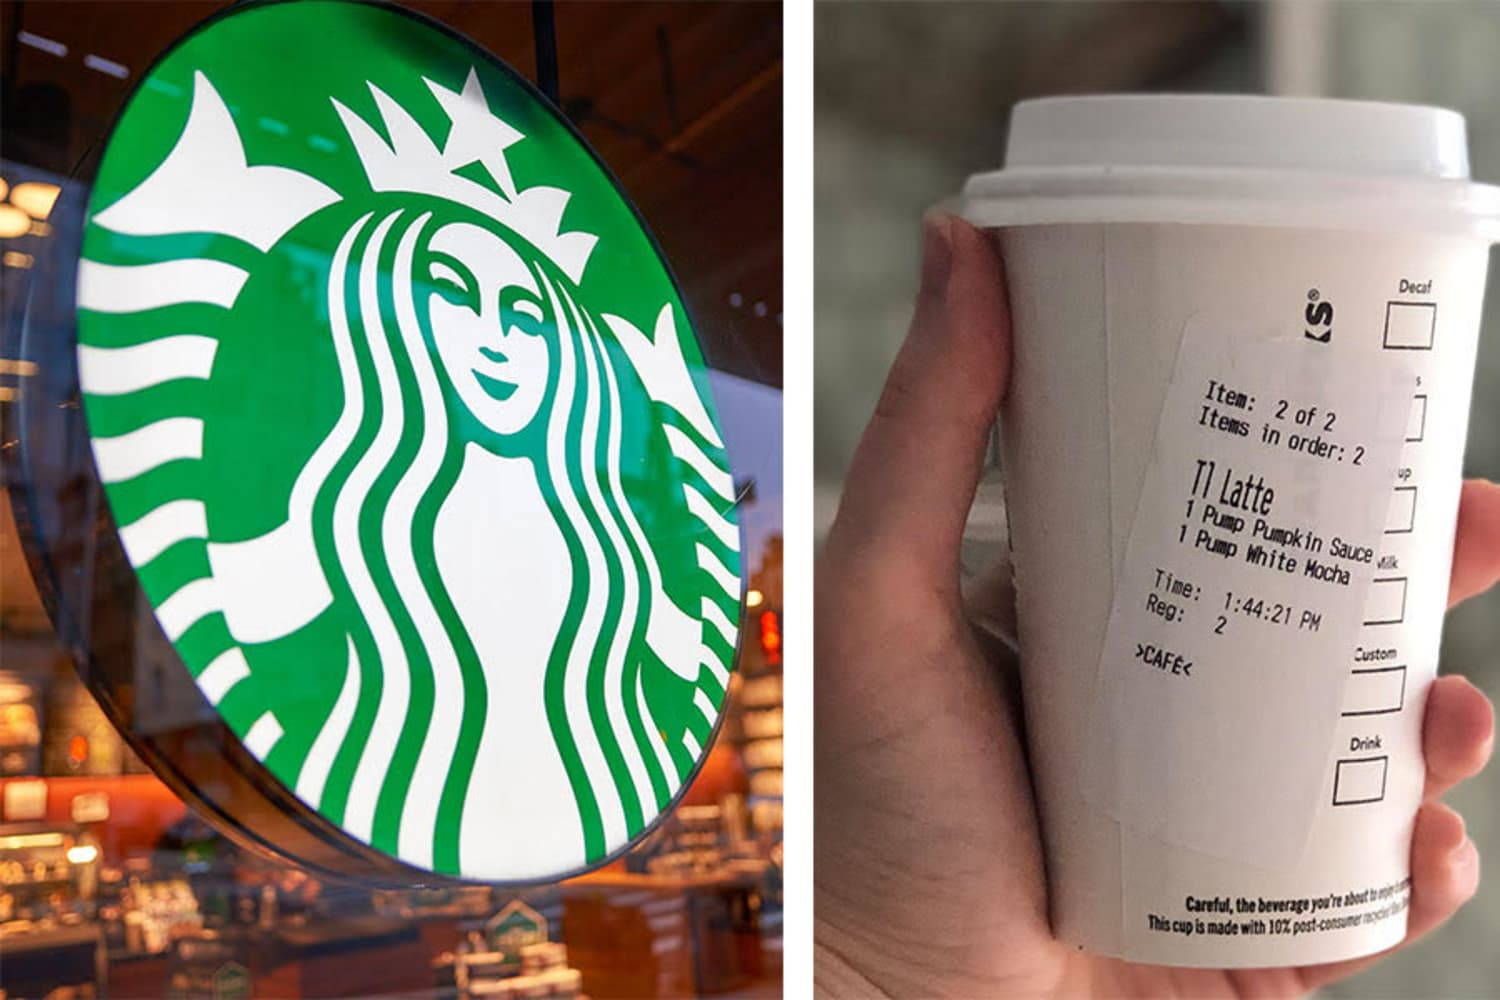 What You Should Order at Starbucks, According to Your Zodiac Sign